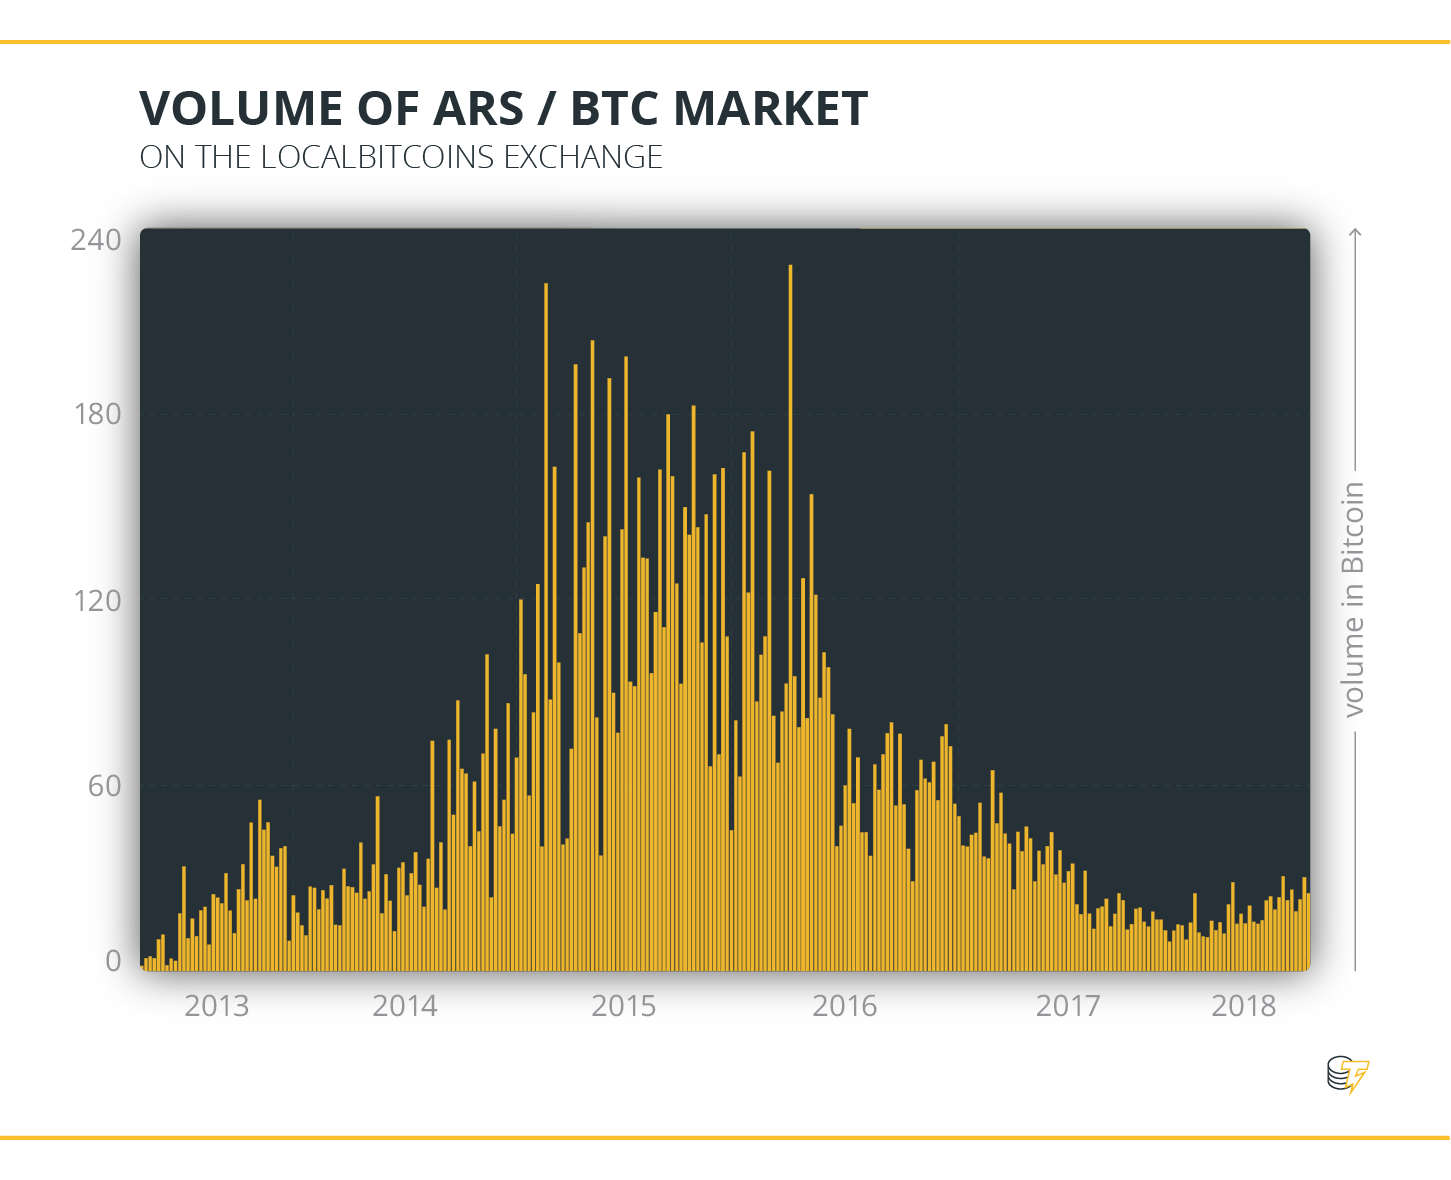 Volume of ARS & BTC Market